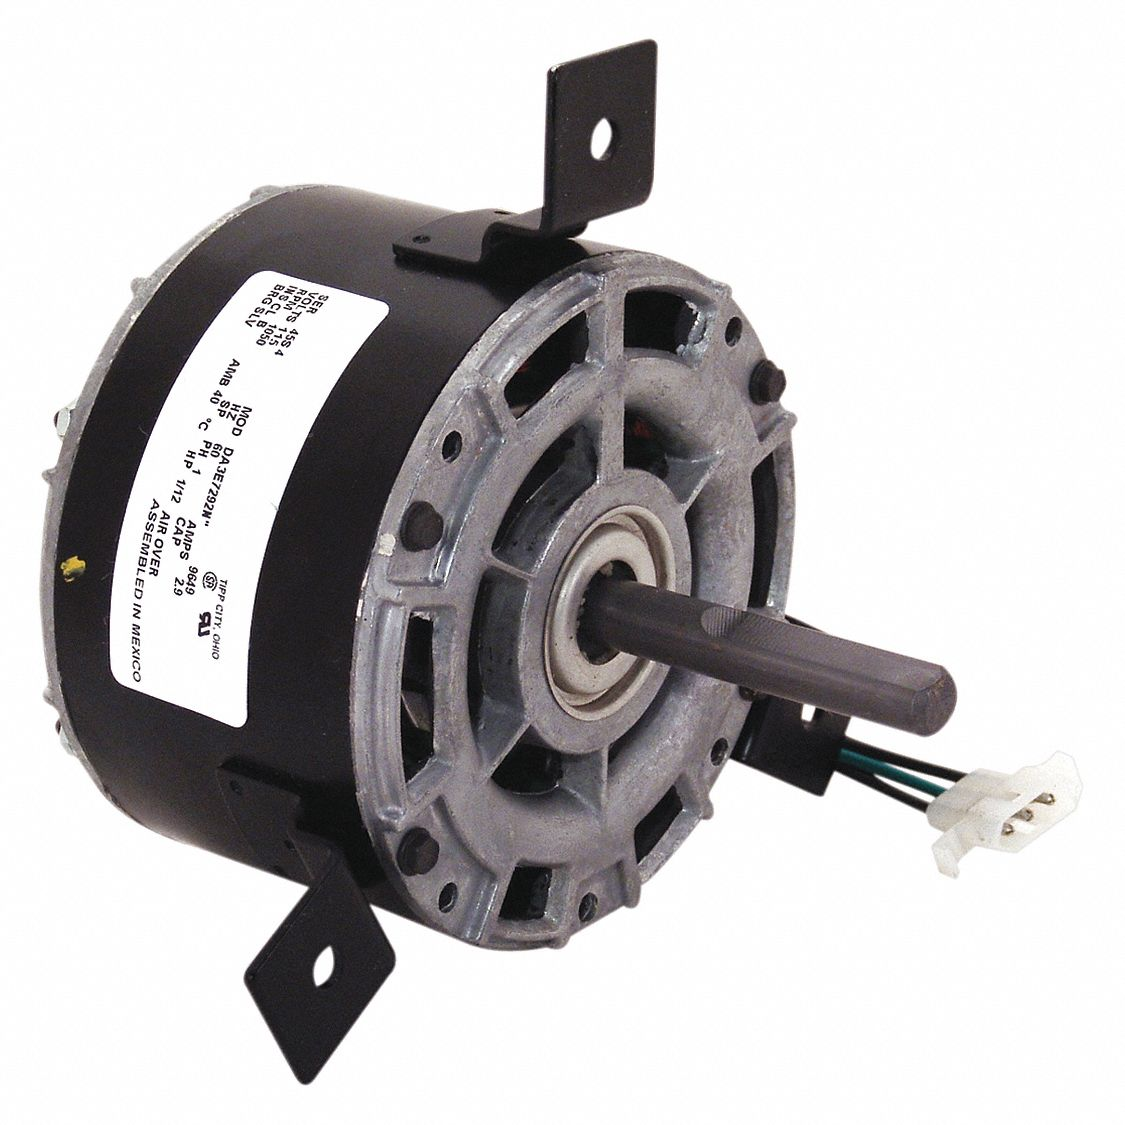 Replacement Motor